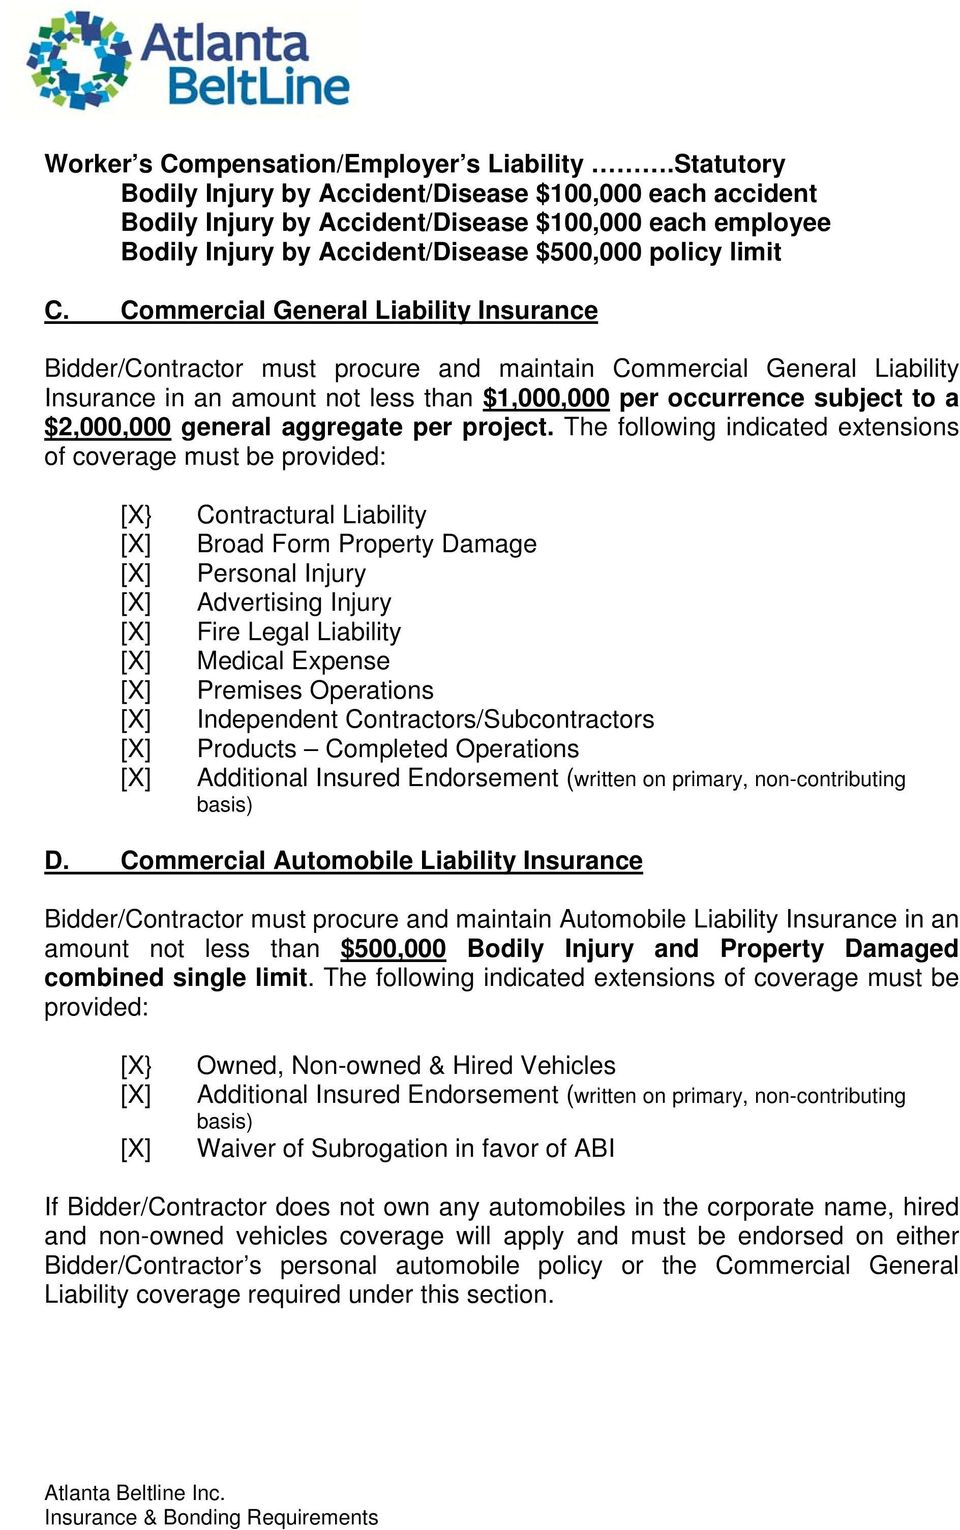 Commercial General Liability Insurance Bidder/Contractor must procure and maintain Commercial General Liability Insurance in an amount not less than $1,000,000 per occurrence subject to a $2,000,000